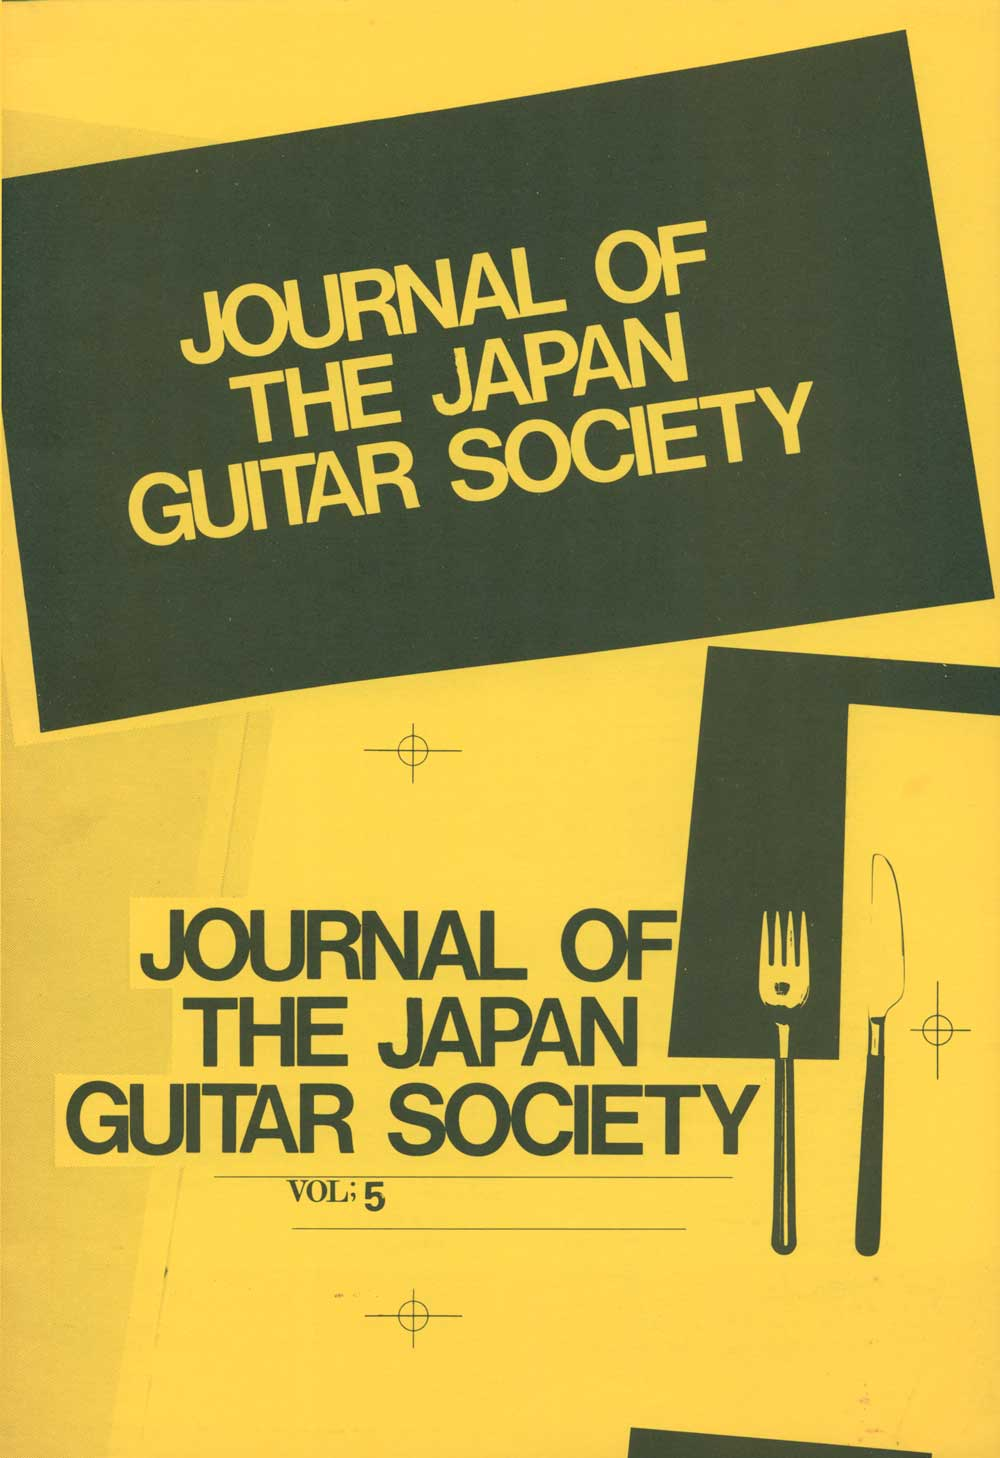 Journal of the Japan Guitar Society